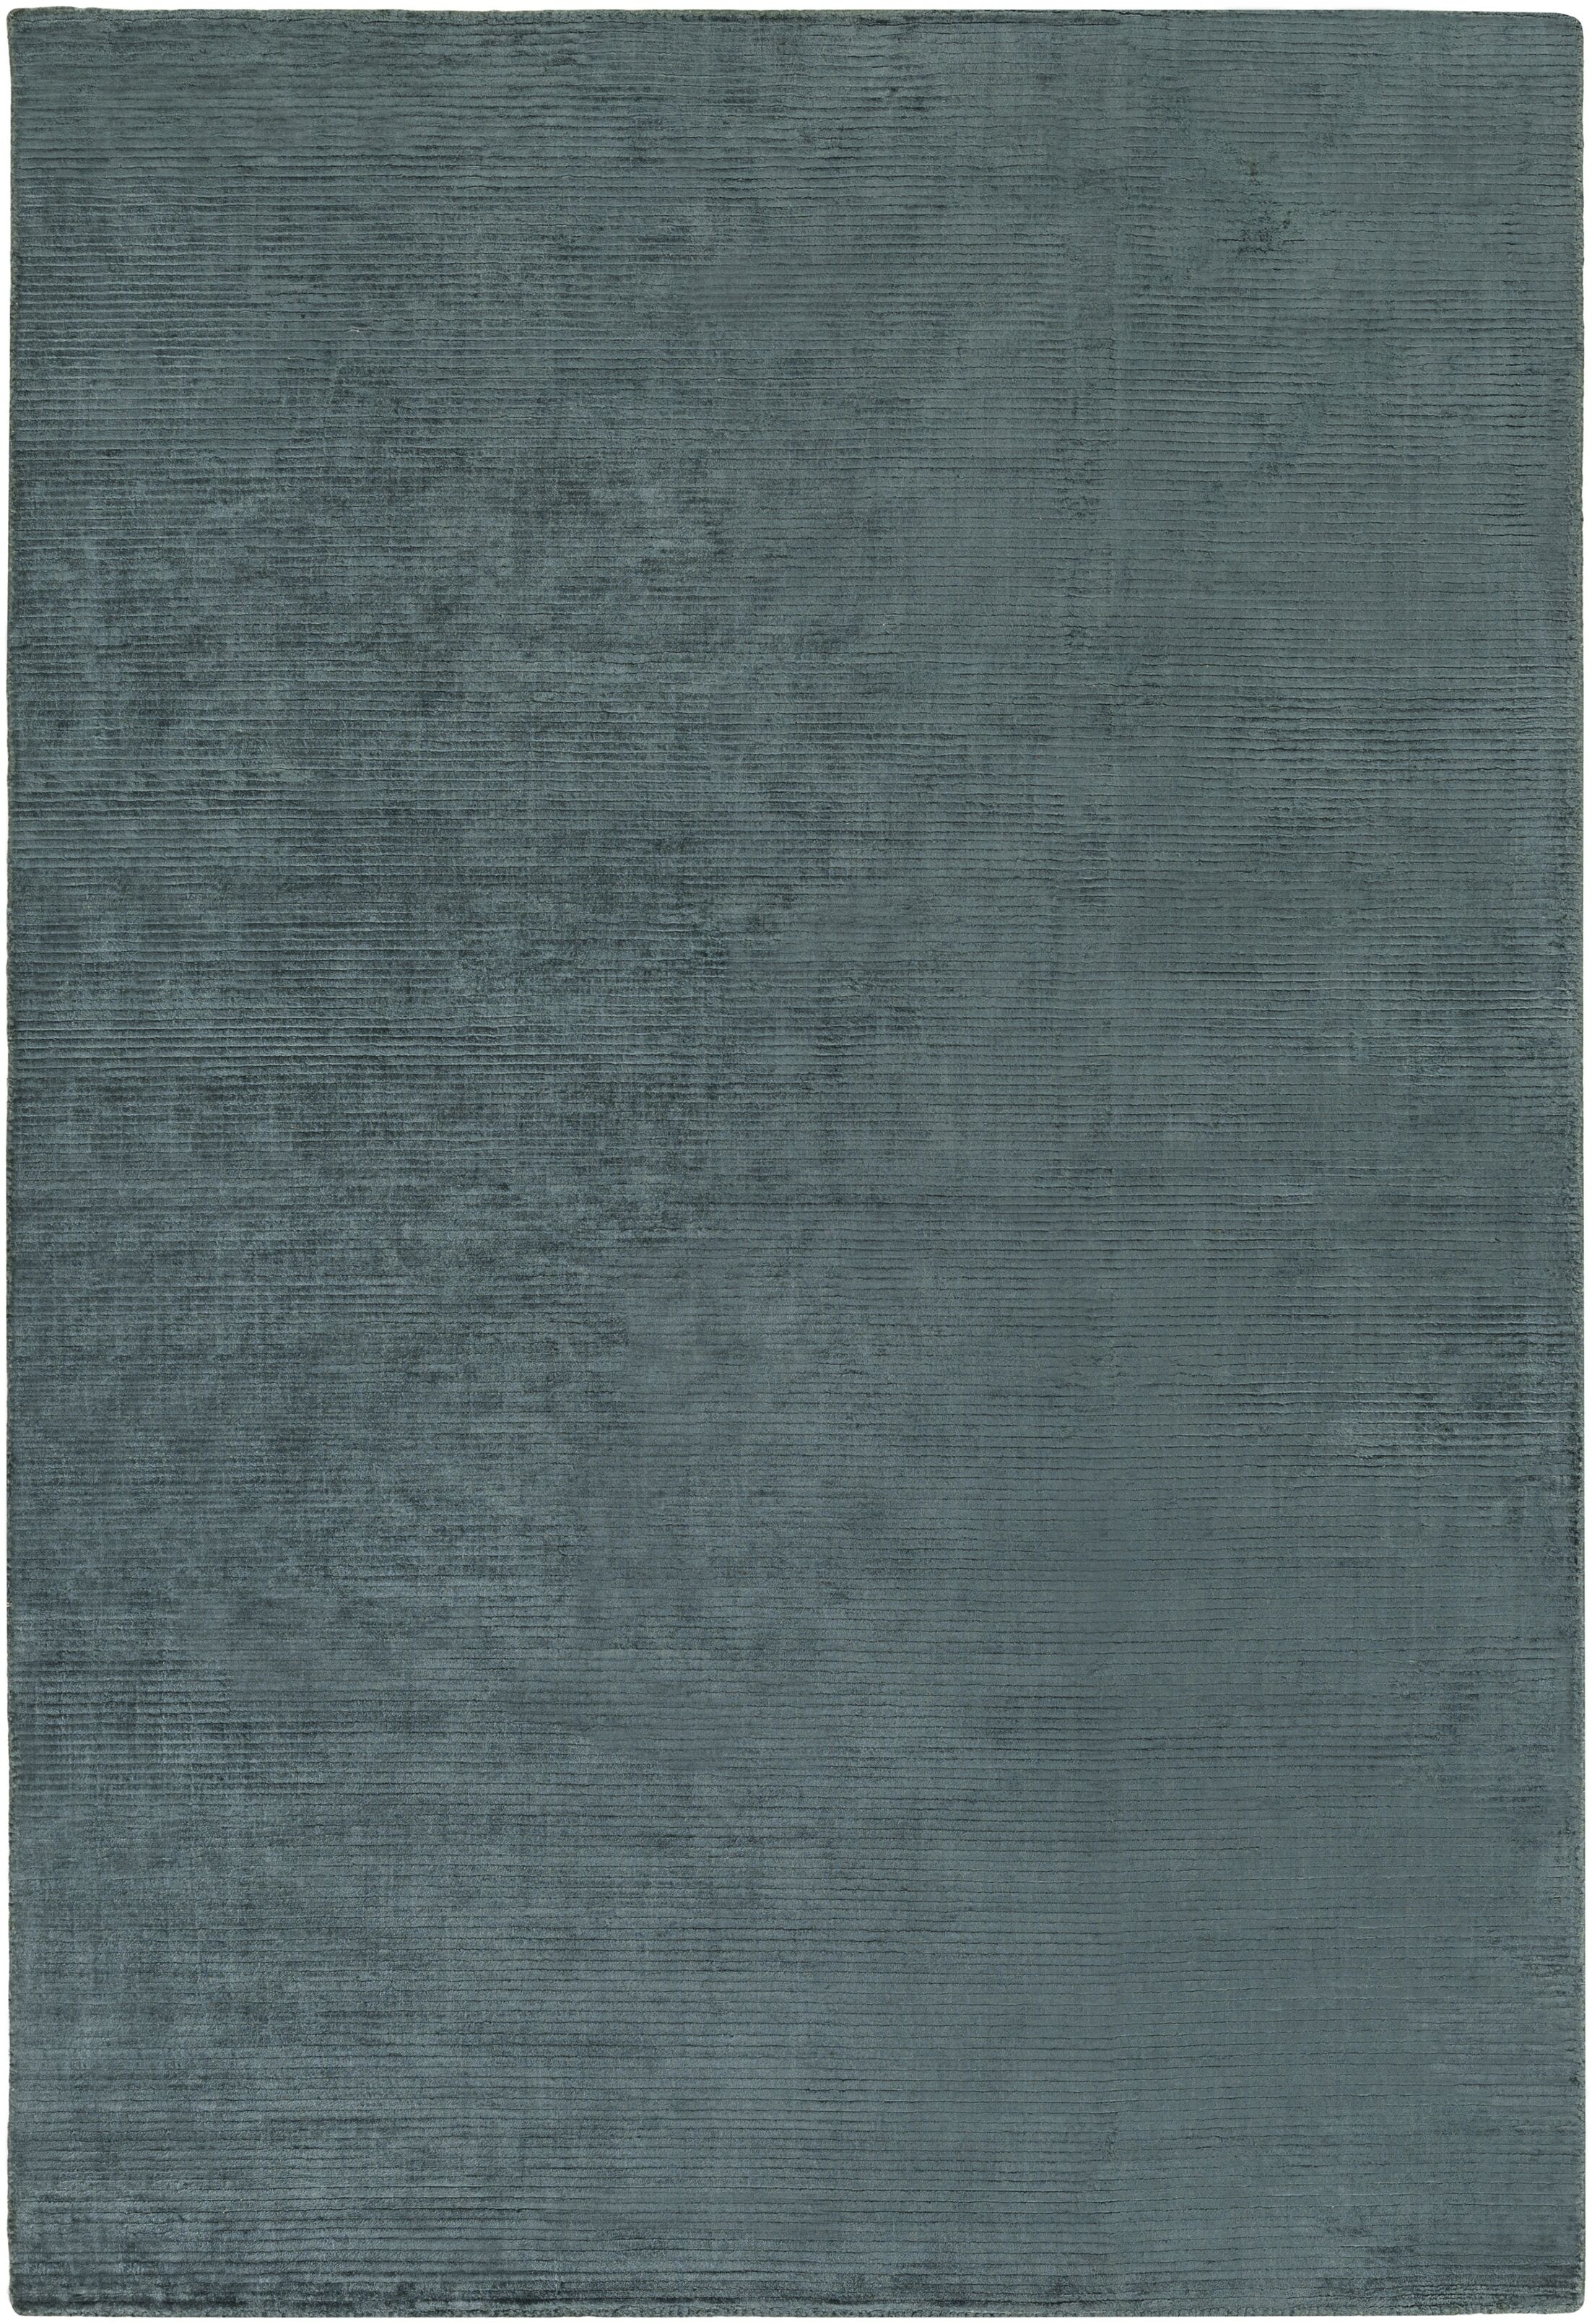 Blosser Hand-Loomed Teal Area Rug Rug Size: Rectangle 5' x 7'6